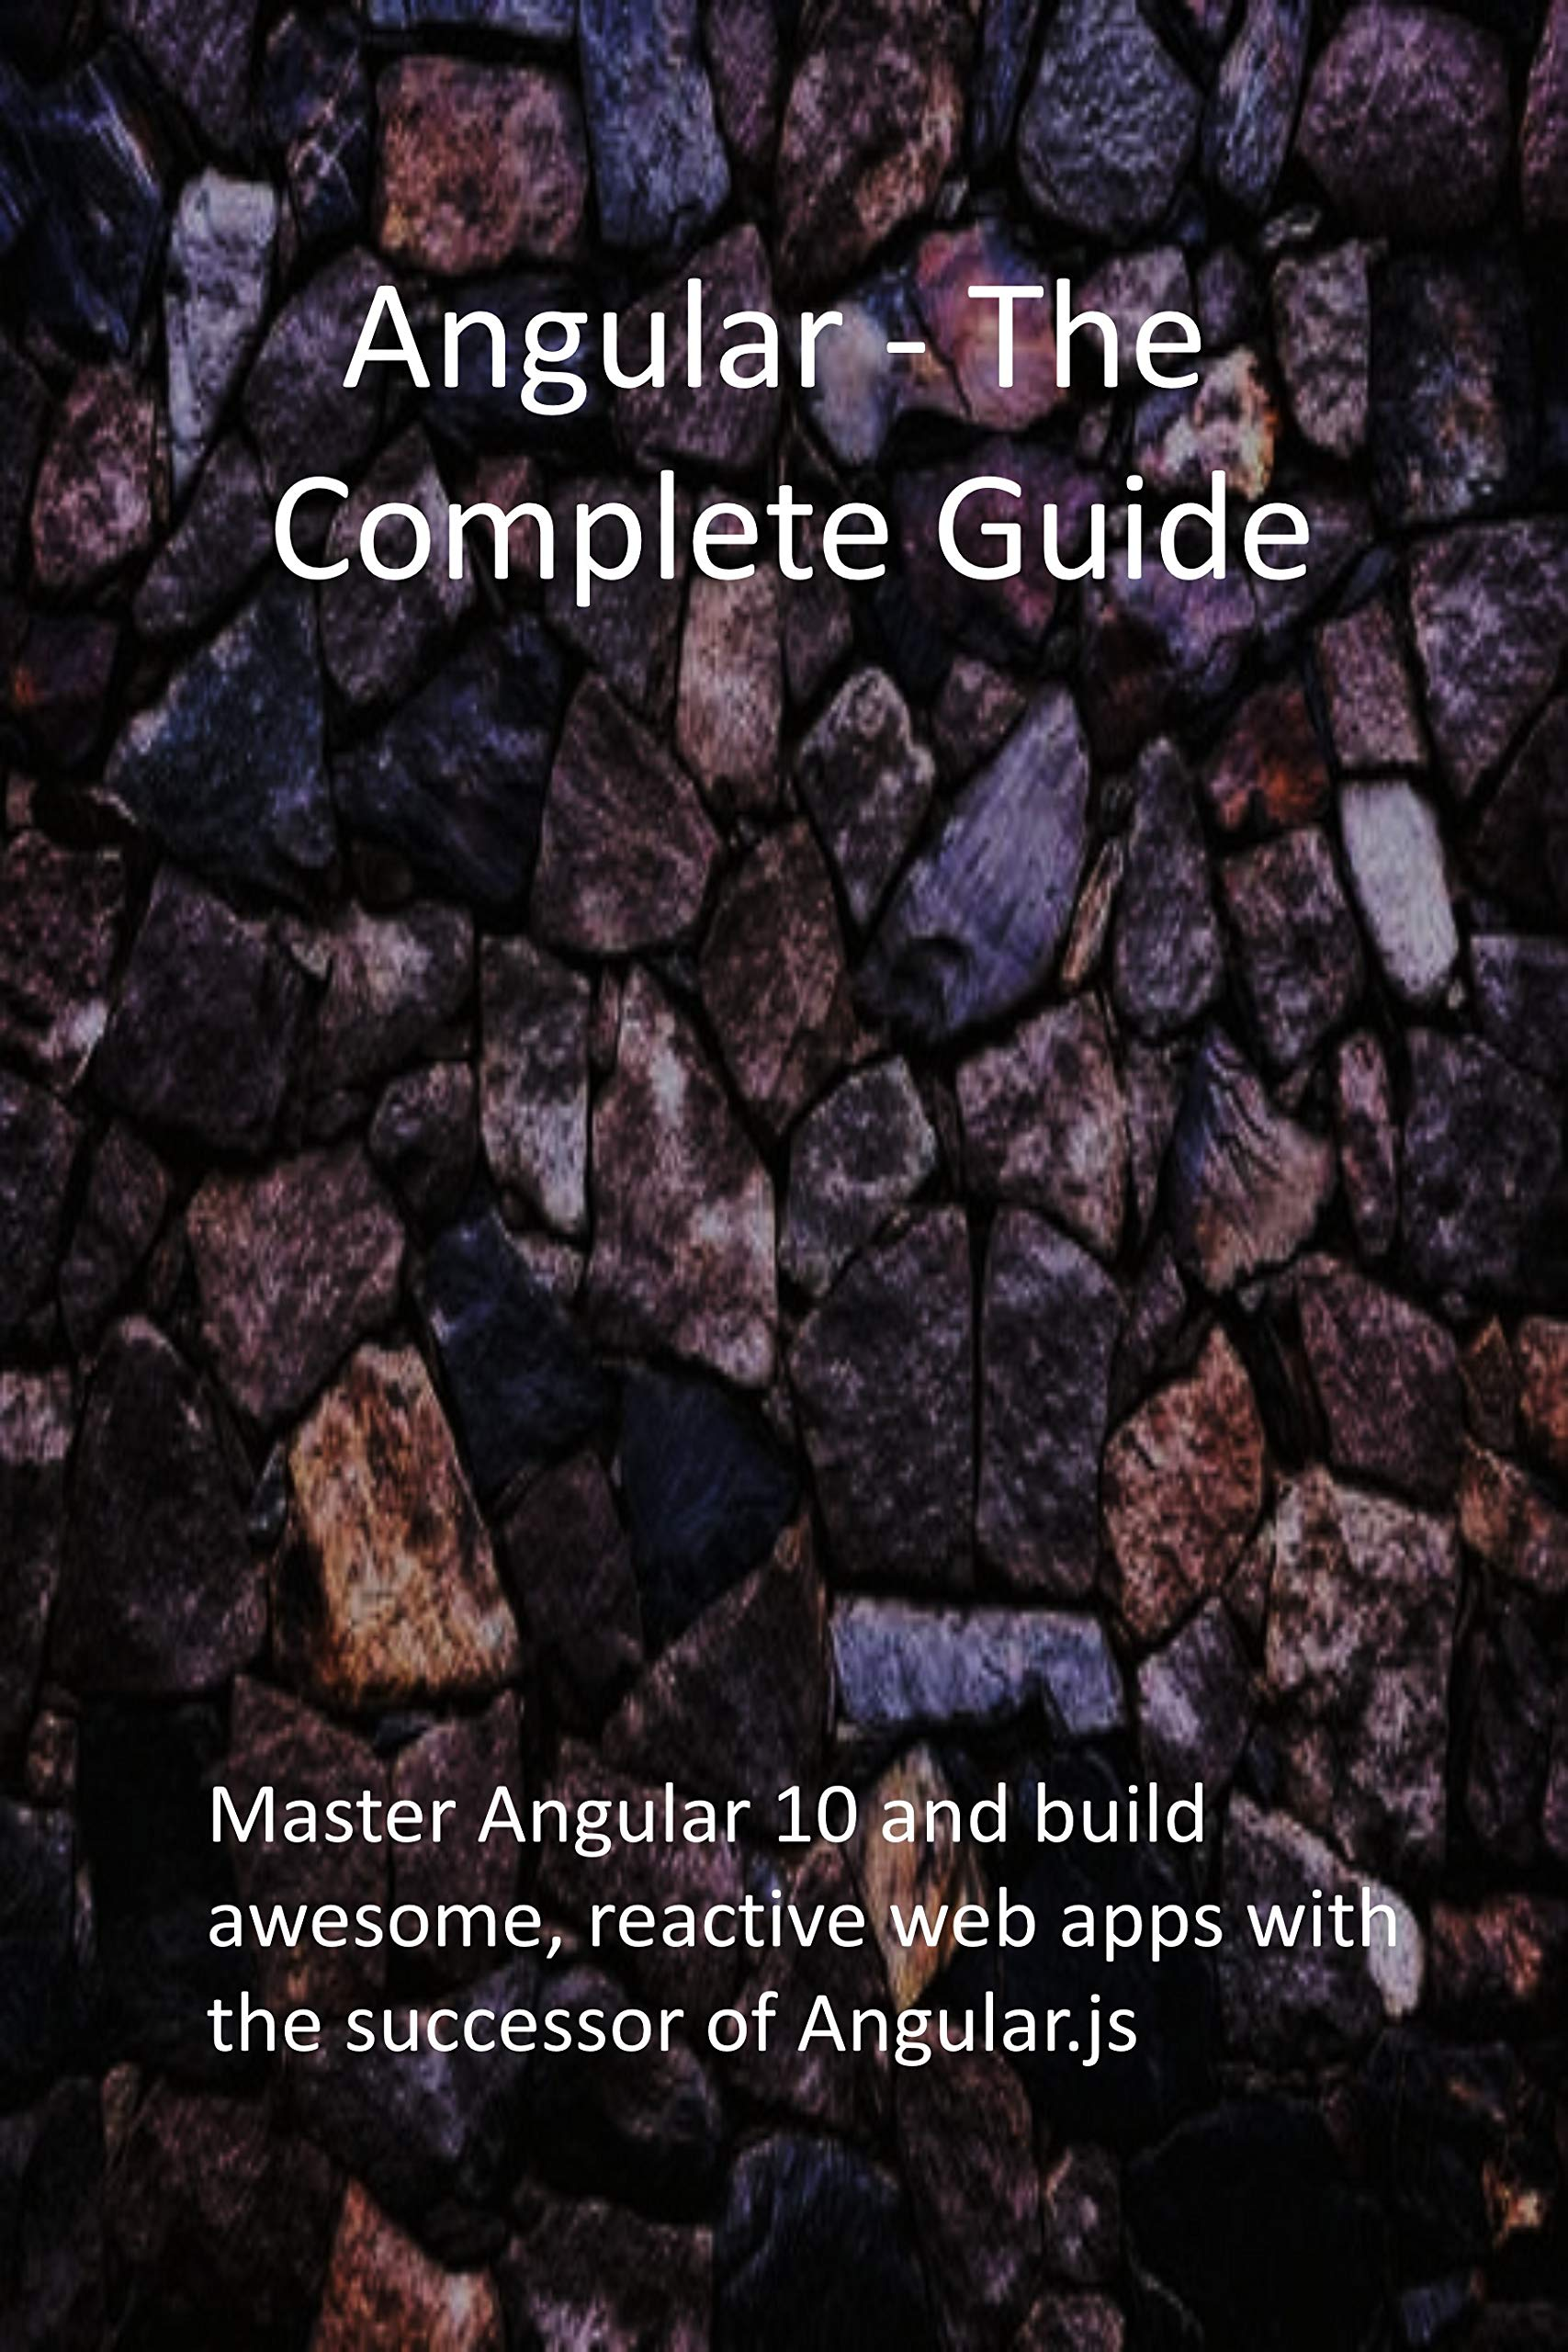 Angular - The Complete Guide: Master Angular 10 and build awesome, reactive web apps with the successor of Angular.js